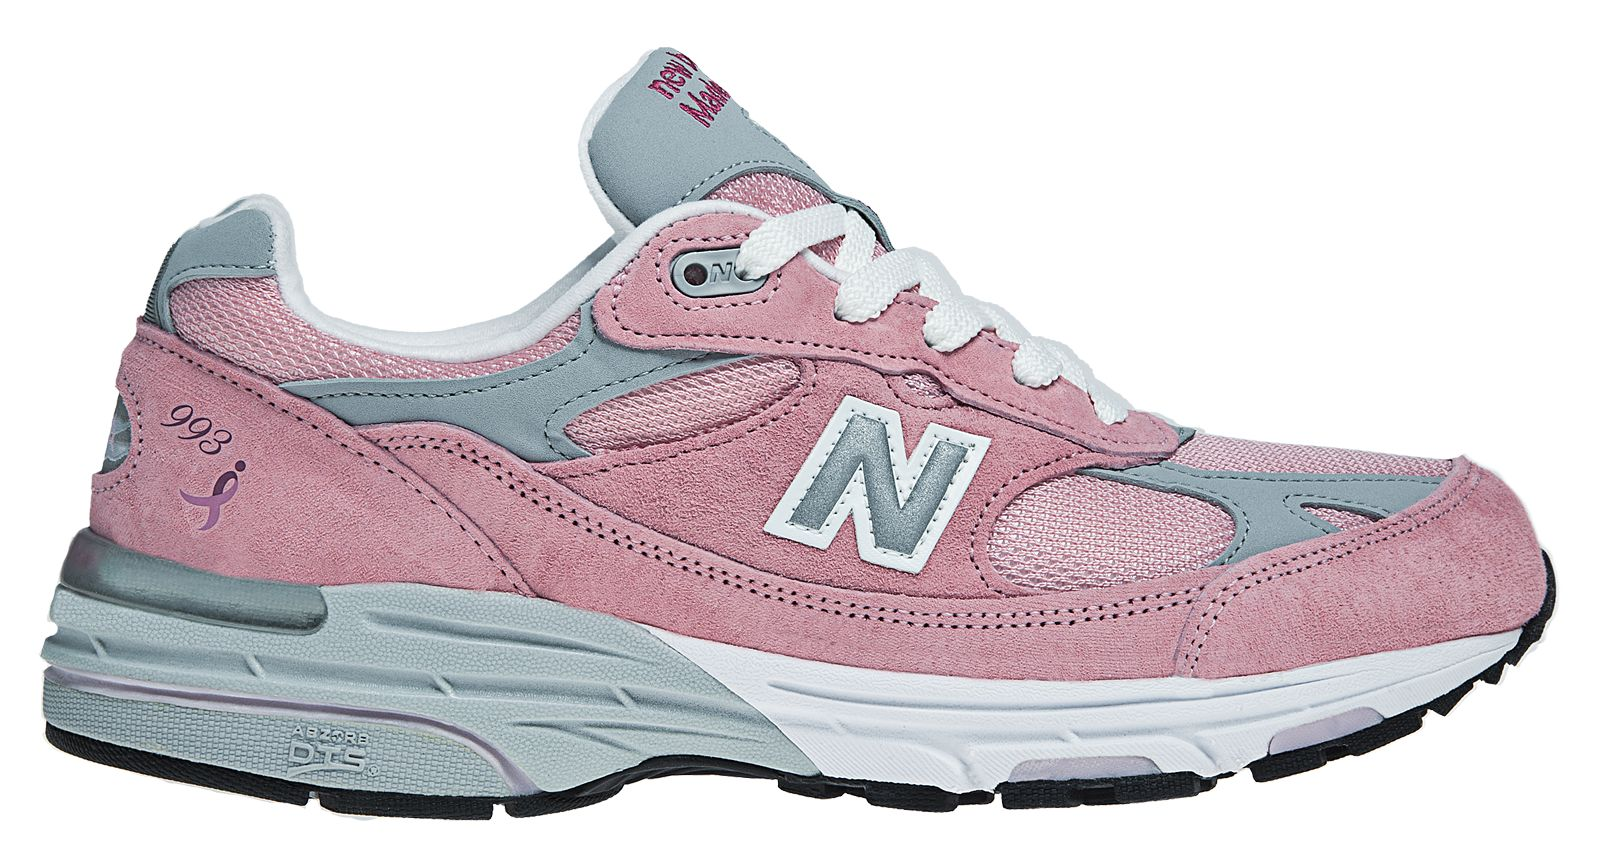 New Balance Womens Lace Up for the Cure 993 Stability Running Shoes Pink